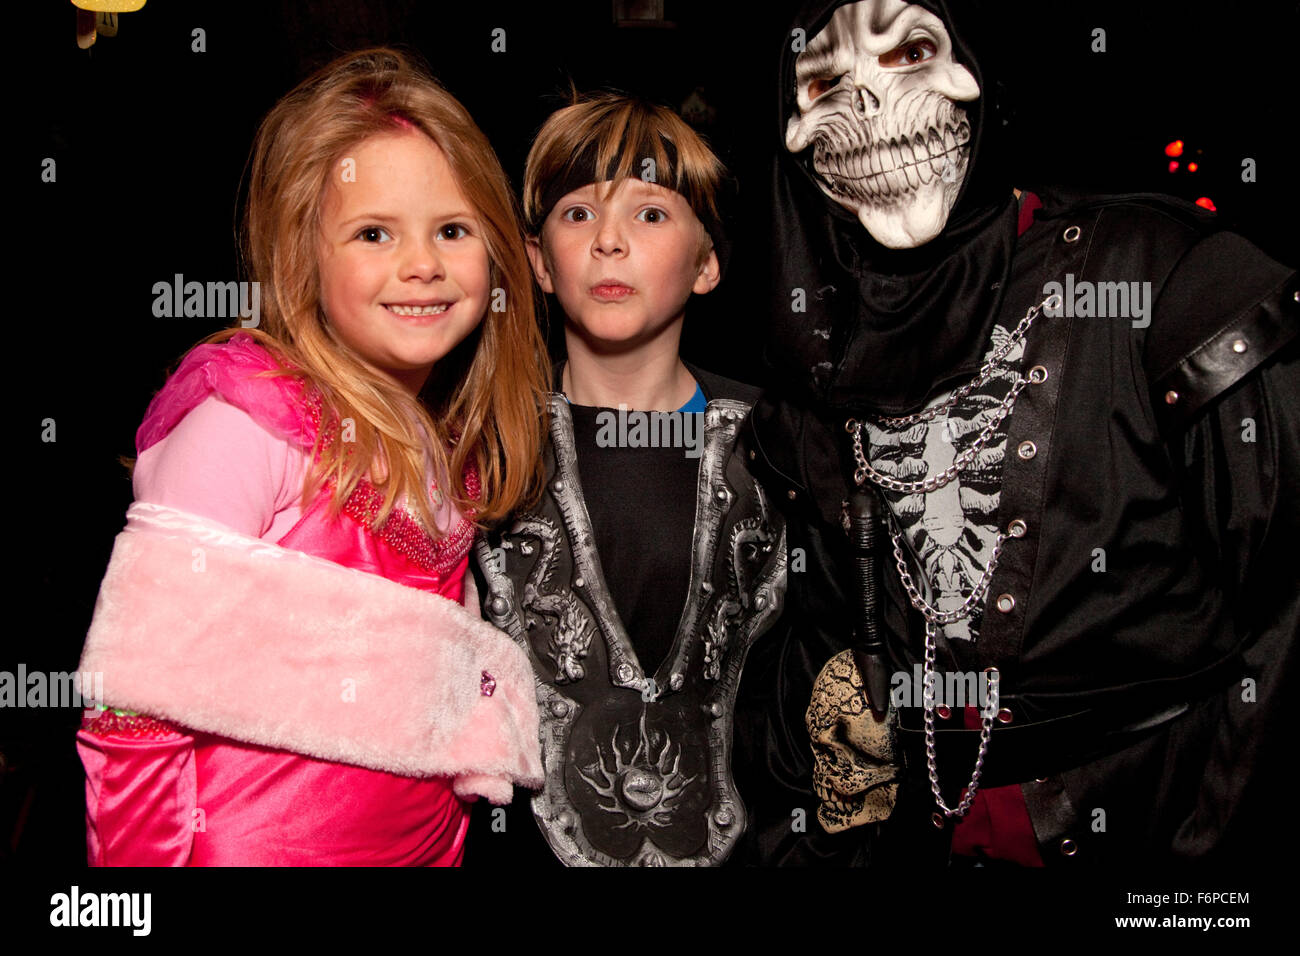 Costumed Halloween goblins out trick and treating. St Paul Minnesota MN USA - Stock Image